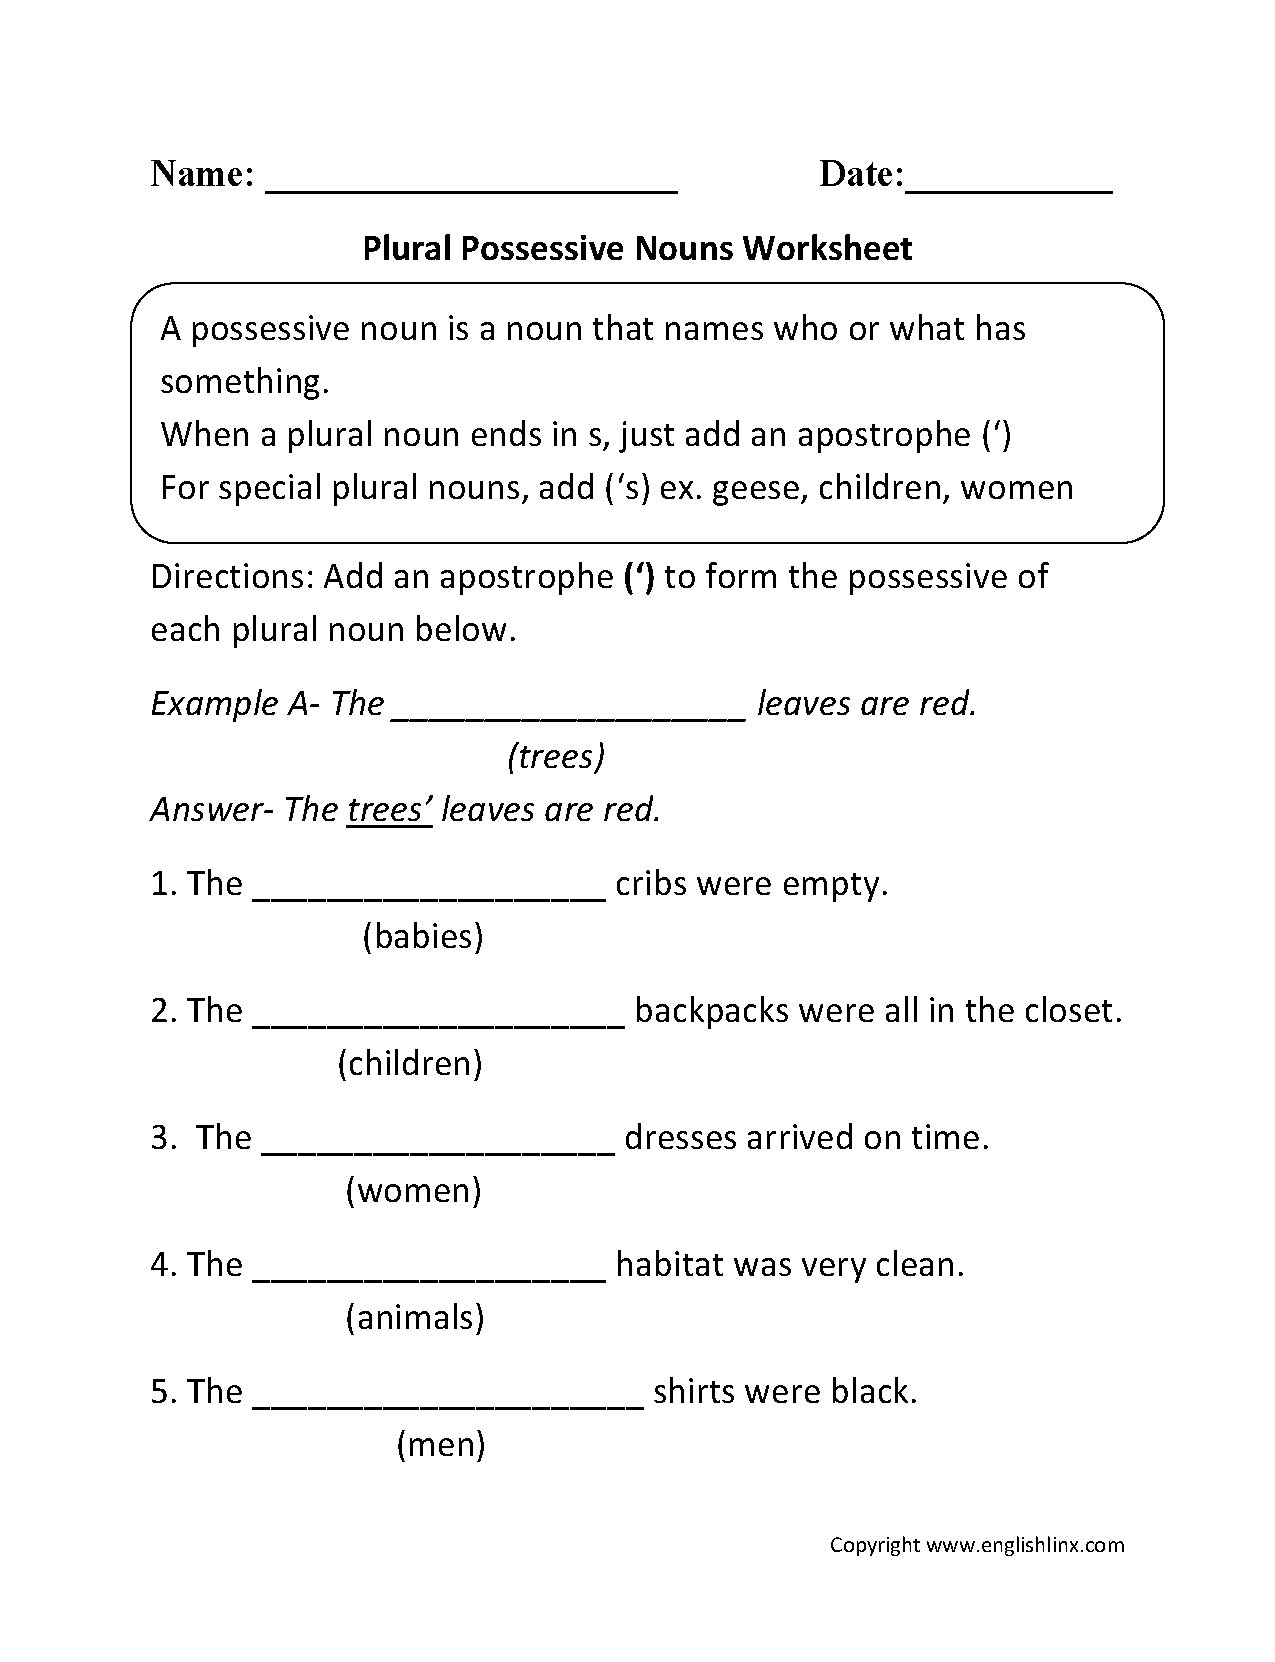 Aldiablosus  Sweet Nouns Worksheets  Possessive Nouns Worksheets With Licious Possessive Nouns Worksheets With Appealing Feeling Words Worksheet Also Consolidate Multiple Worksheets In Addition Simple Present Vs Present Continuous Worksheet And Dr Who Worksheets As Well As Worksheet On Force And Motion Additionally Counting In S Worksheets From Englishlinxcom With Aldiablosus  Licious Nouns Worksheets  Possessive Nouns Worksheets With Appealing Possessive Nouns Worksheets And Sweet Feeling Words Worksheet Also Consolidate Multiple Worksheets In Addition Simple Present Vs Present Continuous Worksheet From Englishlinxcom